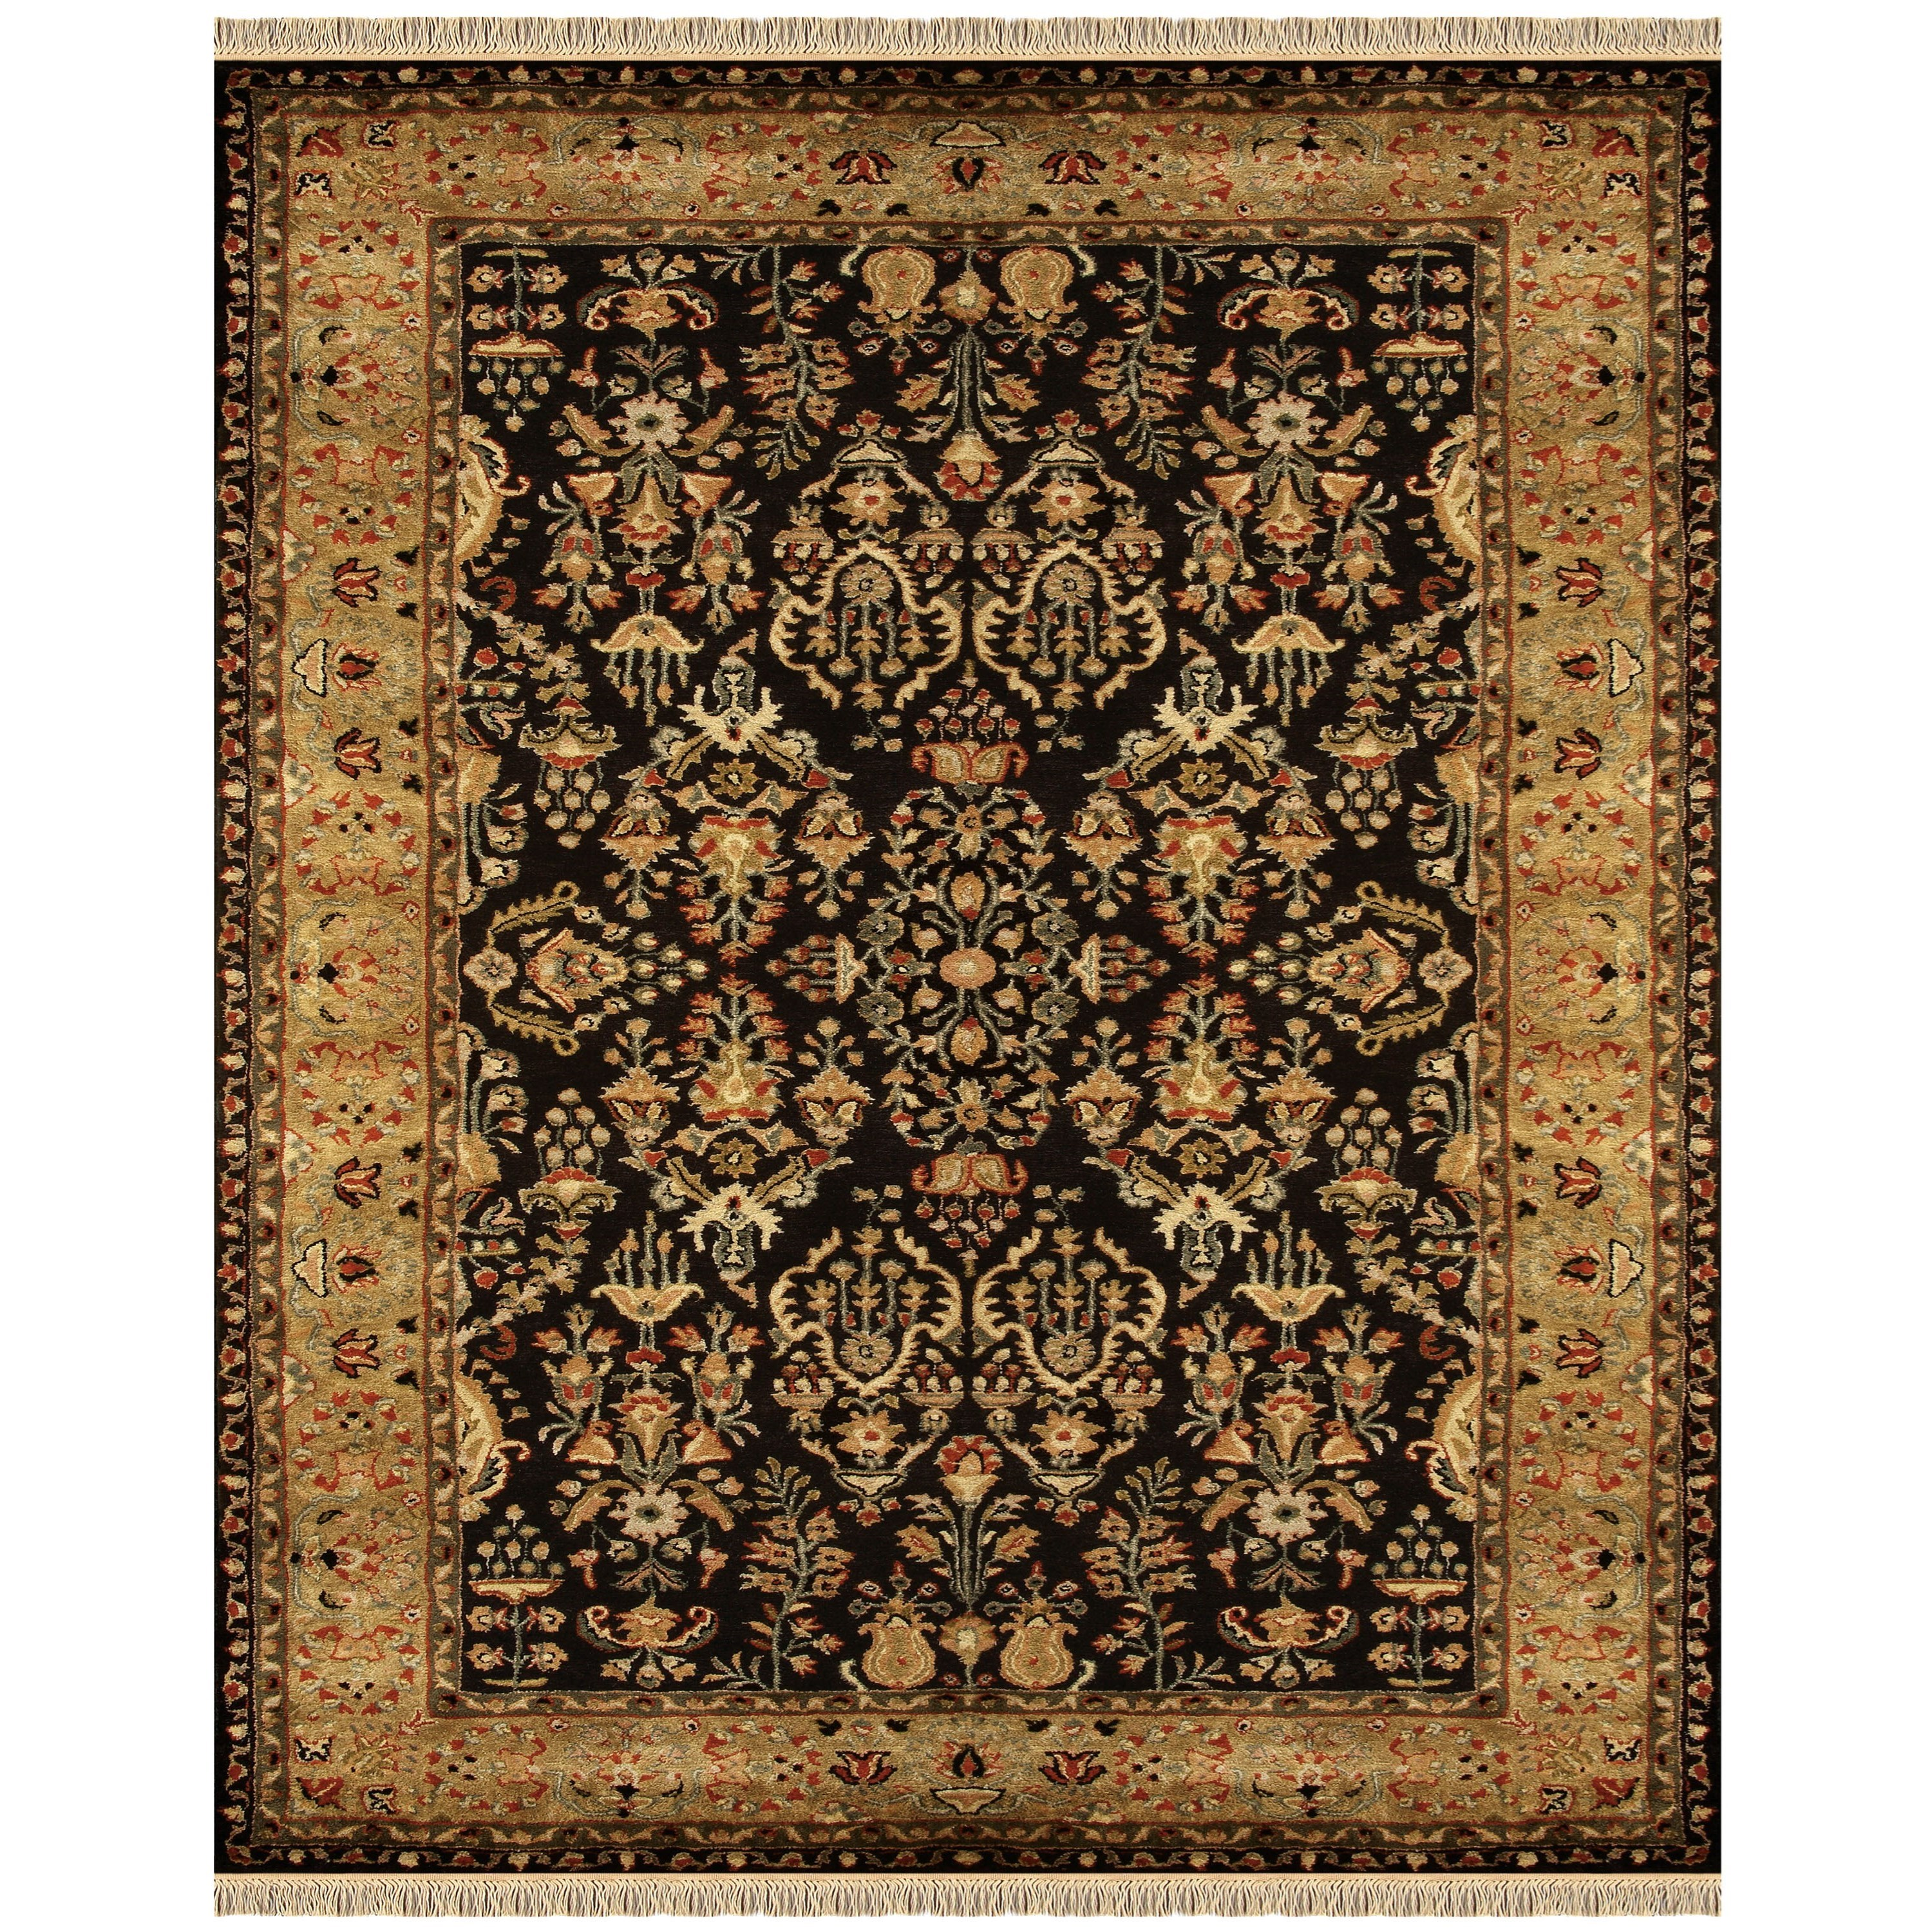 Amore Black/Gold 8' X 11' Area Rug by Feizy Rugs at Sprintz Furniture